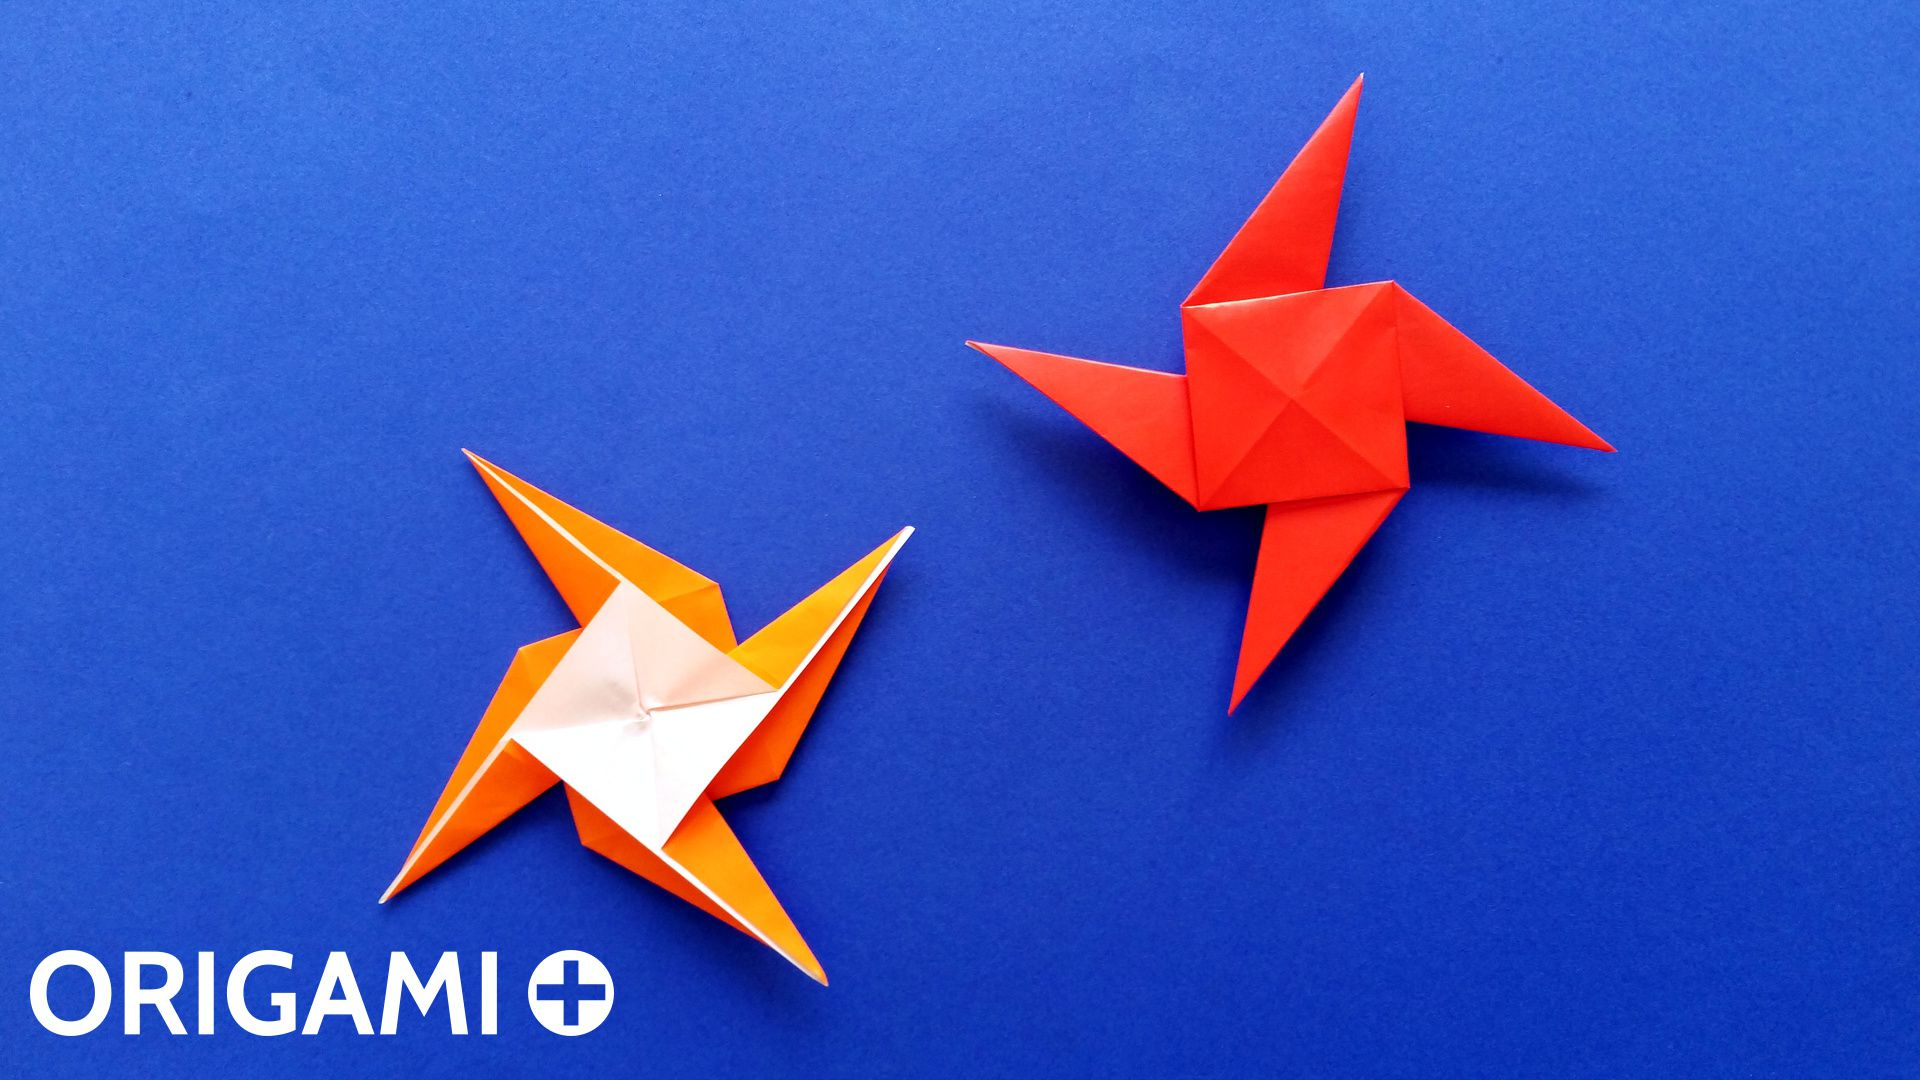 Origami Models Designed By Stphane Gigandet